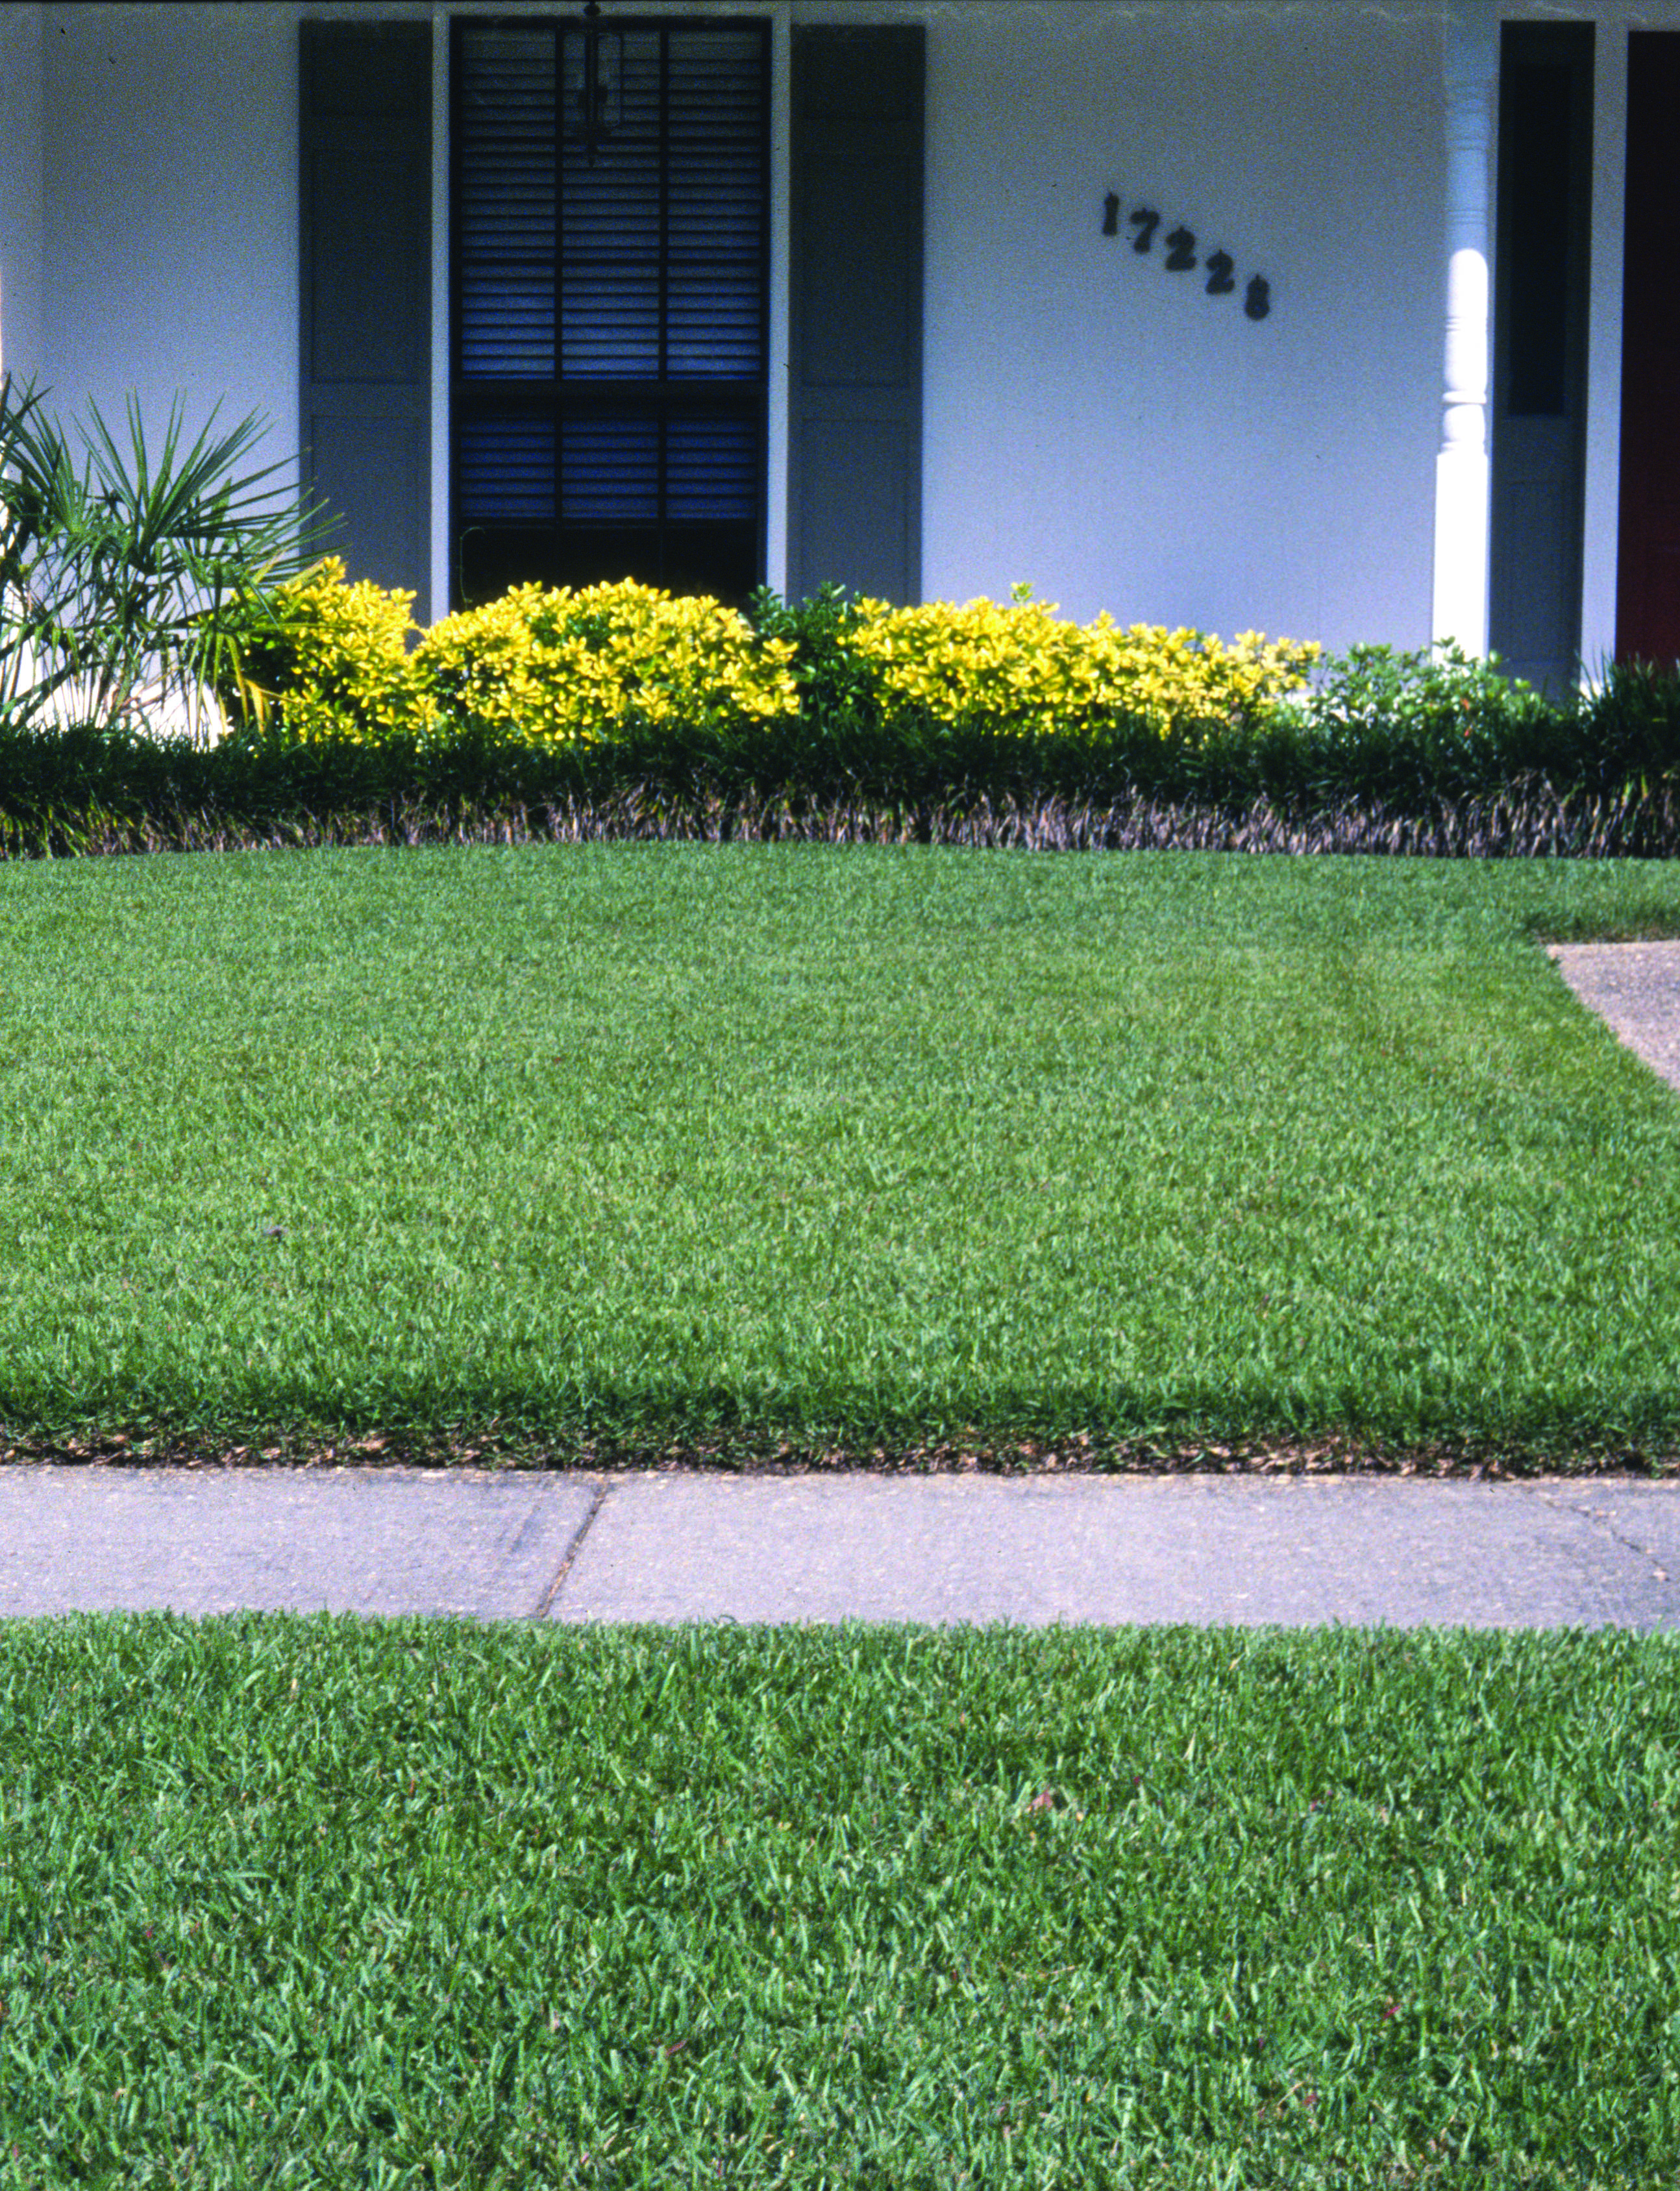 Dealing with grass clippings